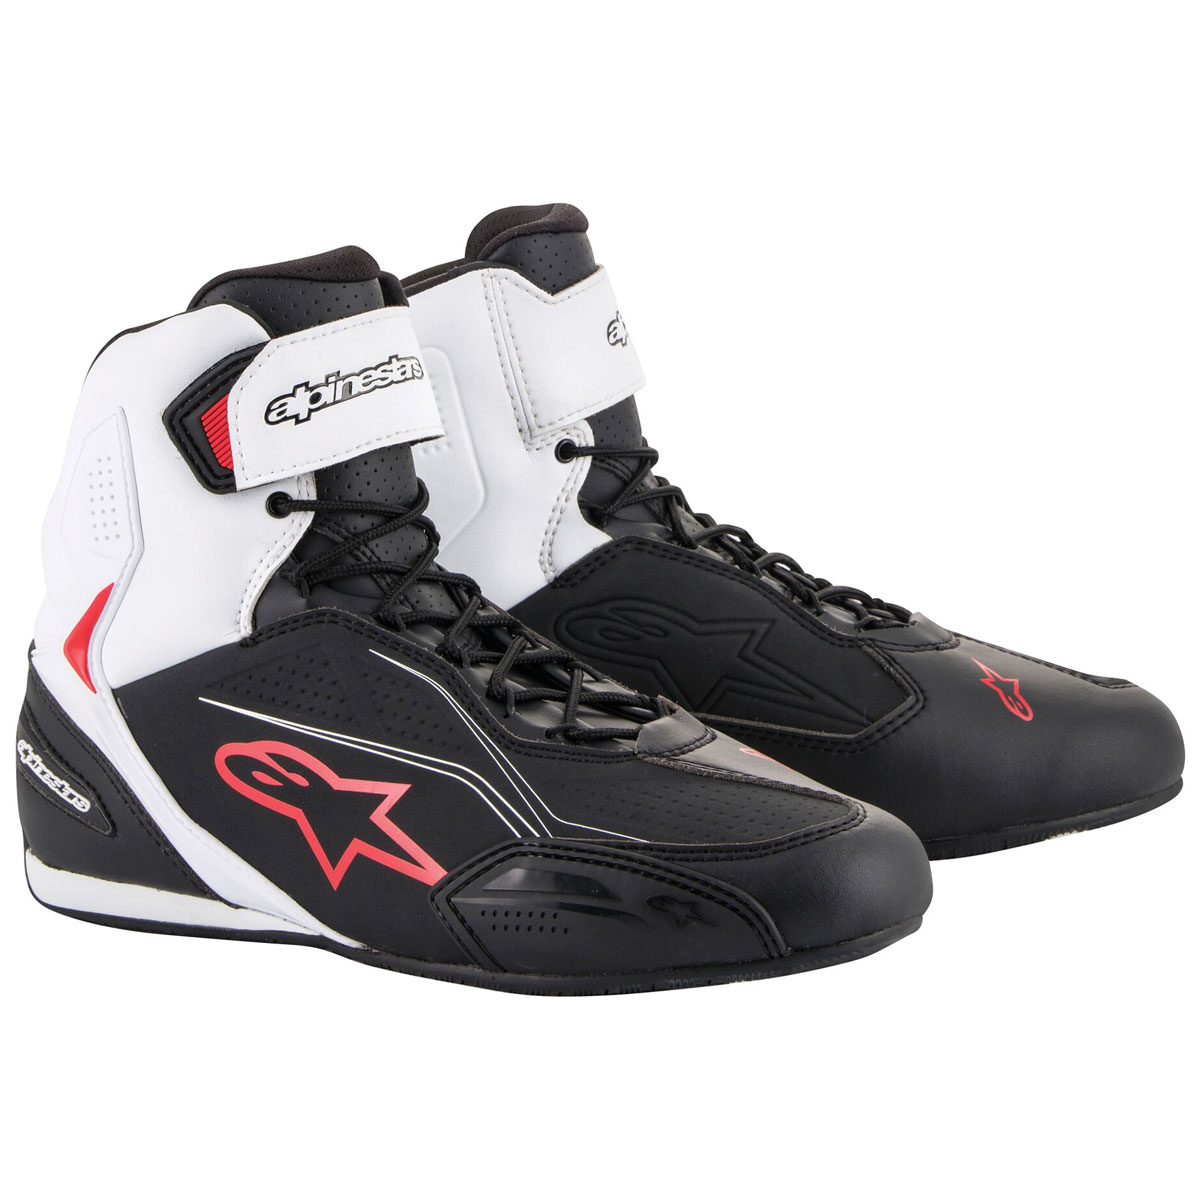 Alpinestars Men's Faster-3 Black/White/Red Boots